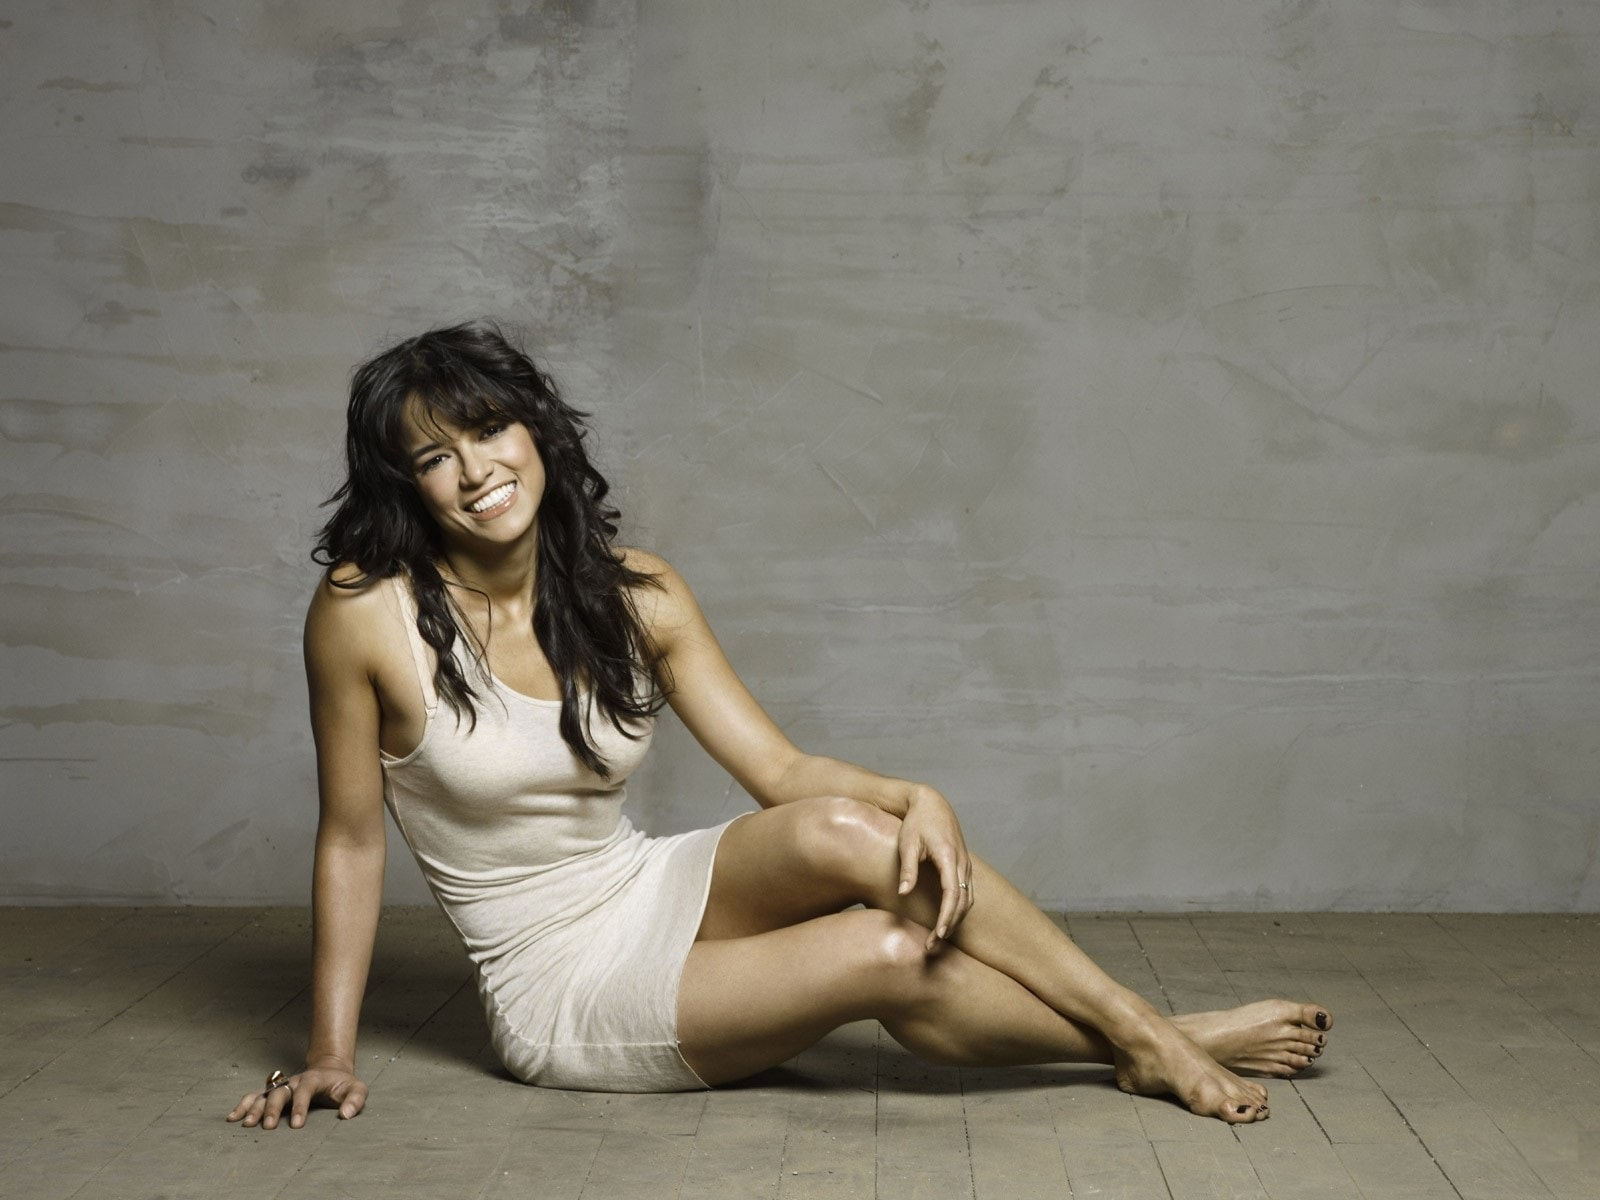 1600x1200 - Michelle Rodriguez Wallpapers 12